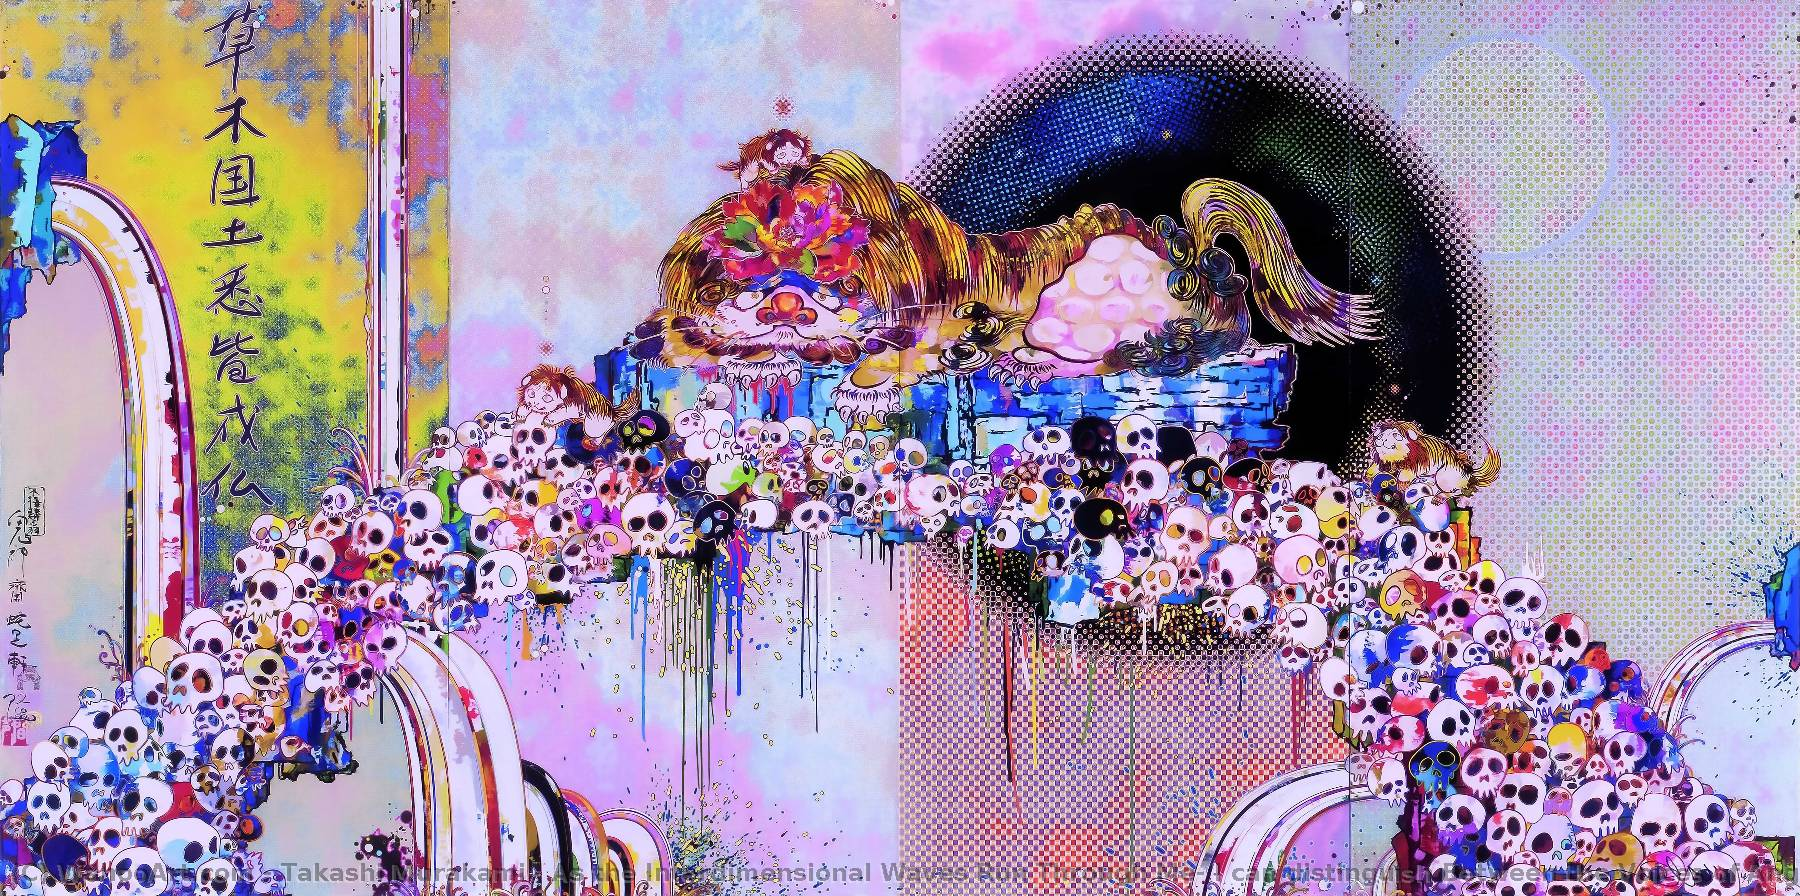 | As the Interdimensional Waves Run Through Me, I can distinguish Between the Voices of Angel and Devil by Takashi Murakami | BuyPopArt.com